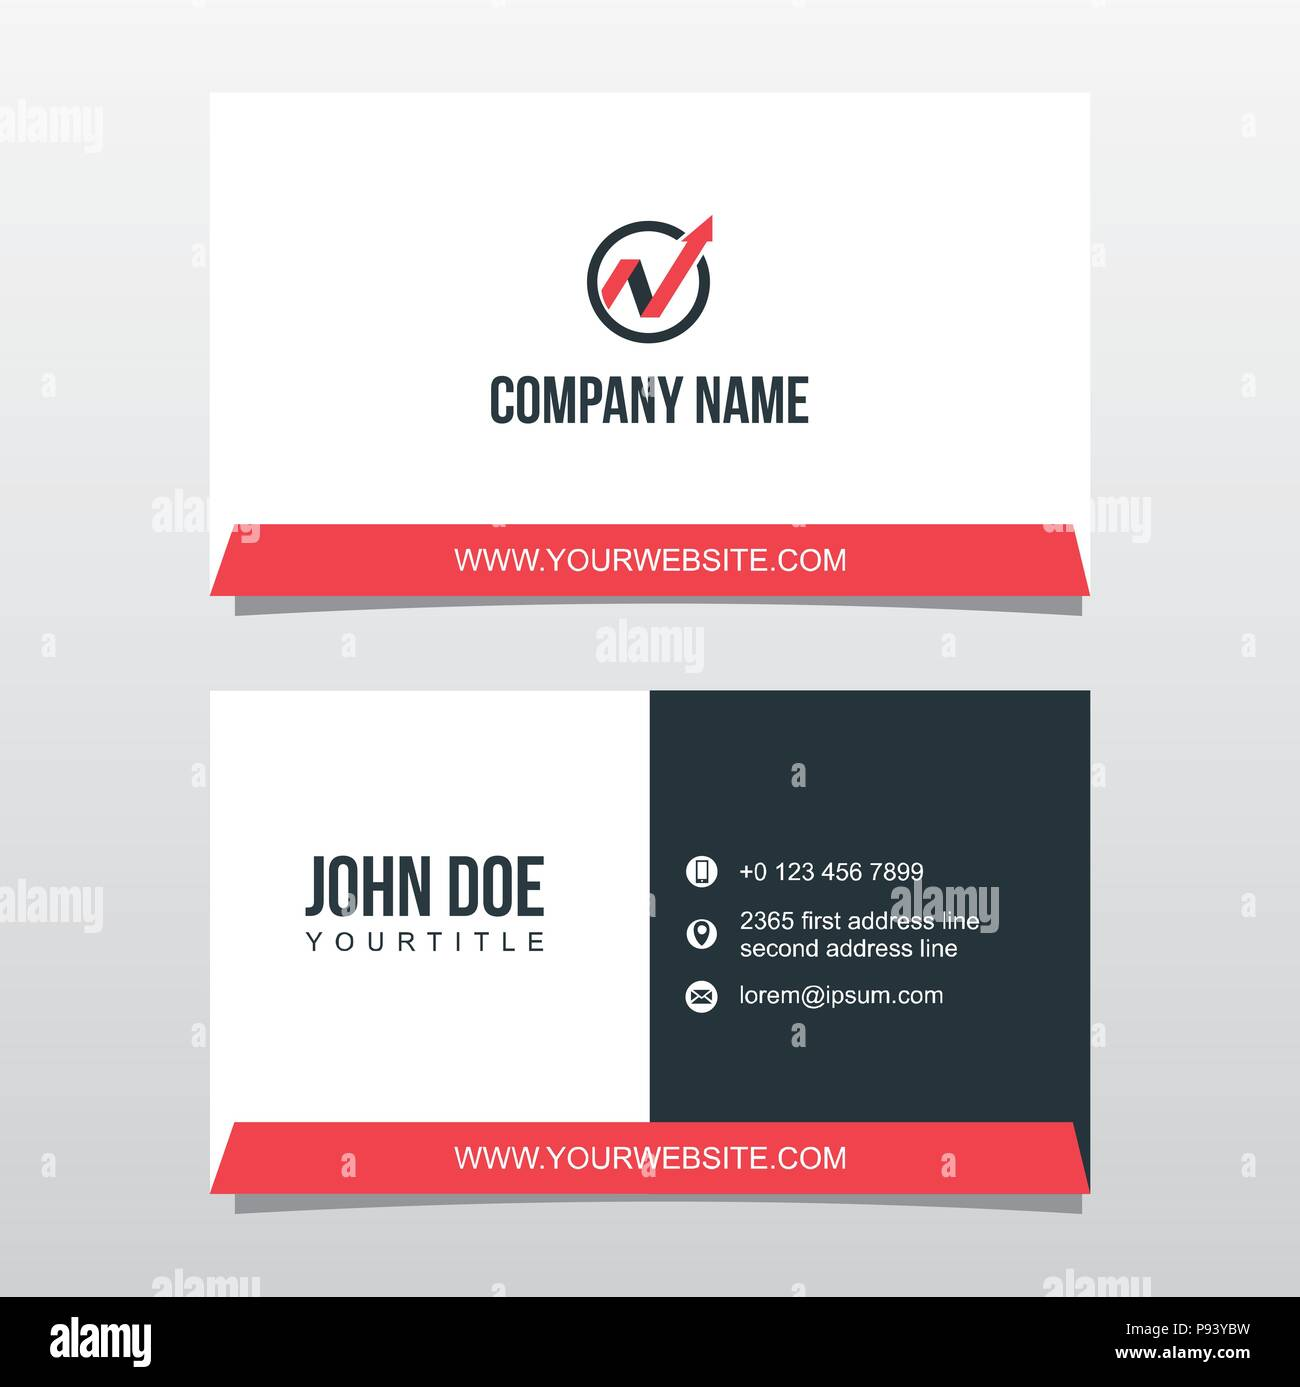 Business Card Template Double Sided Stock Vector Art Illustration